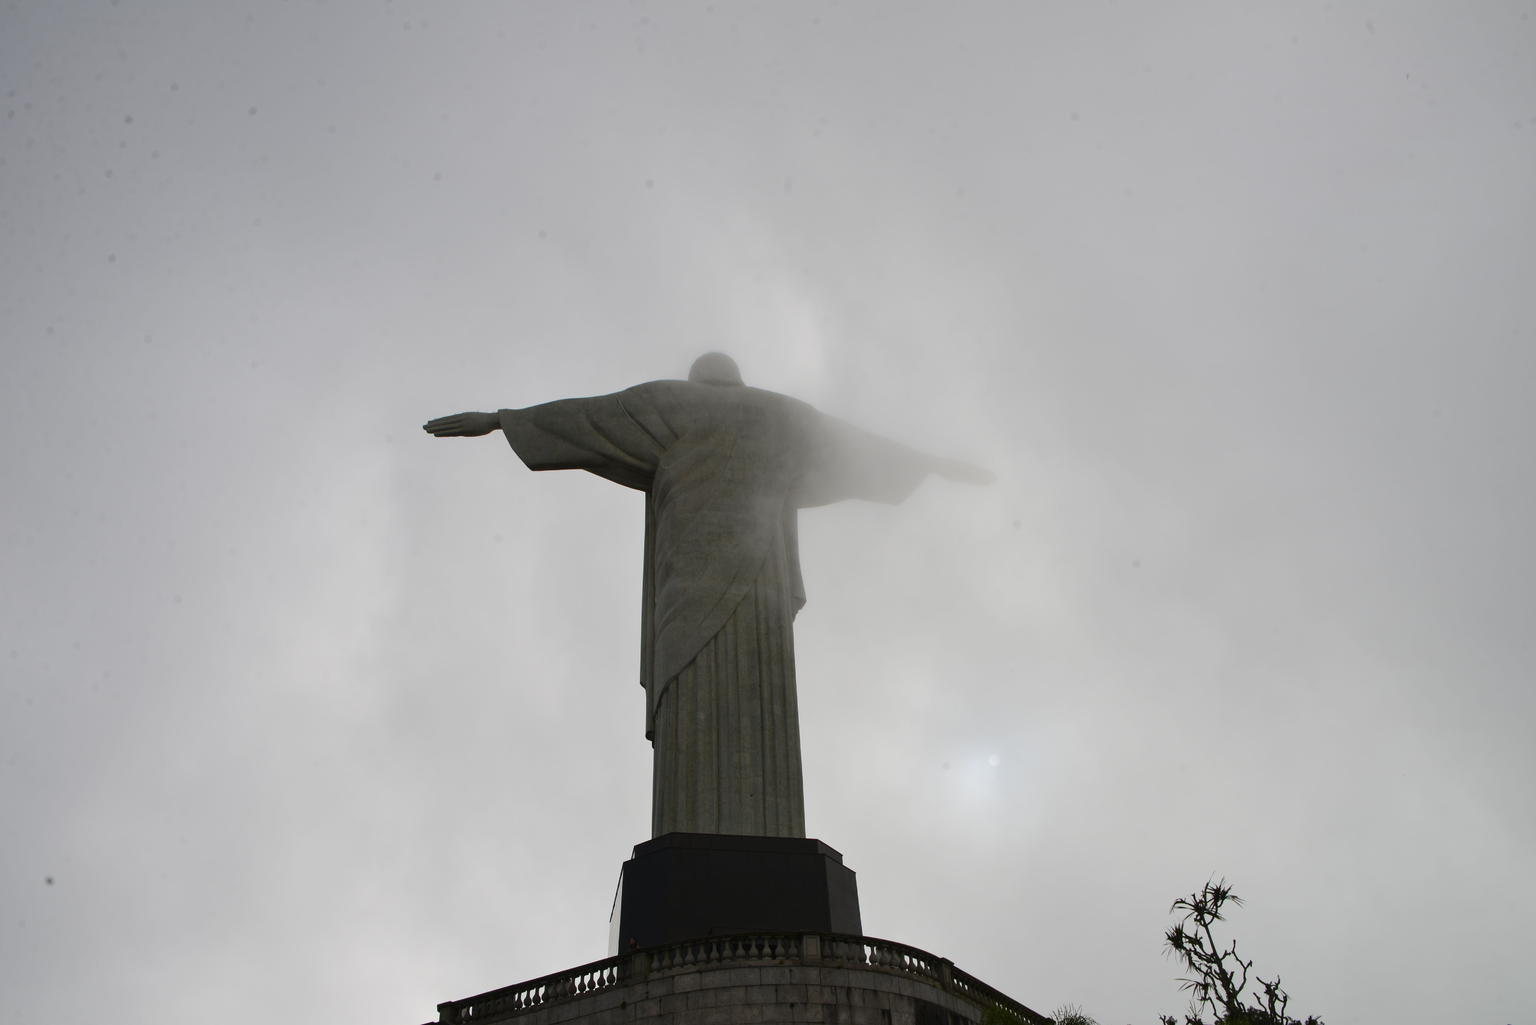 Christ Redeemer and Sugar Loaf Mountain Small-Group Tour